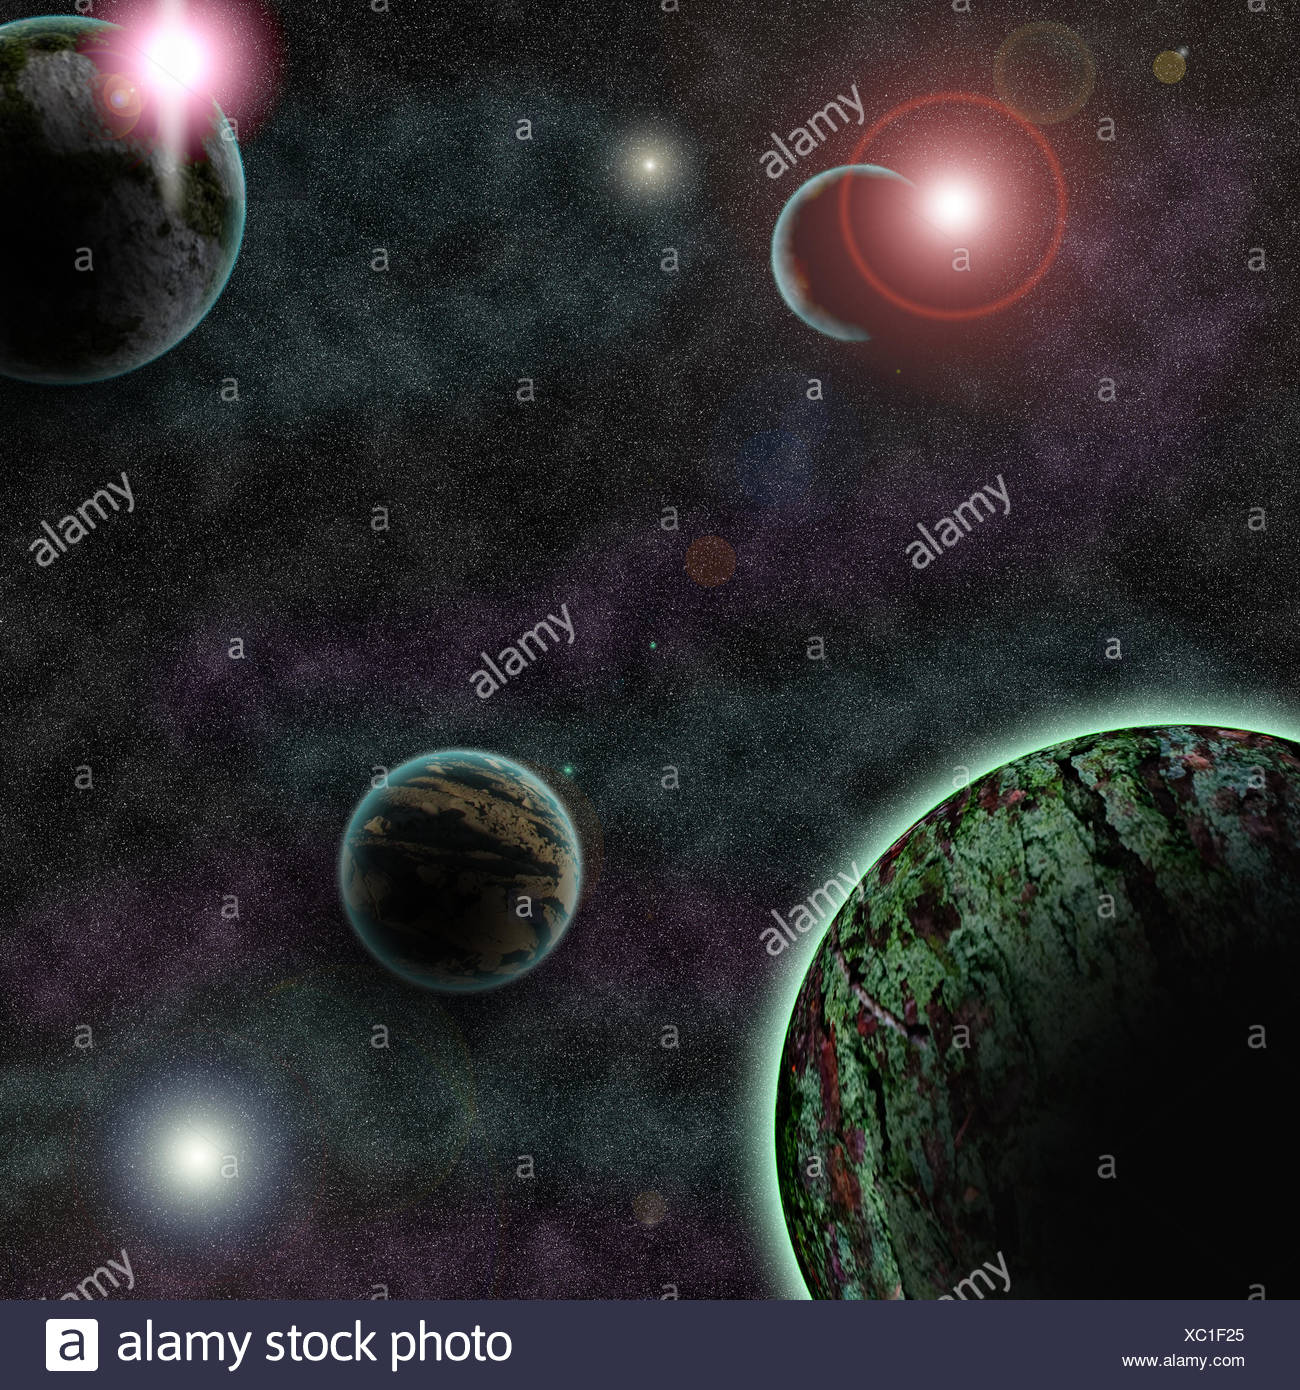 outer space - Stock Image